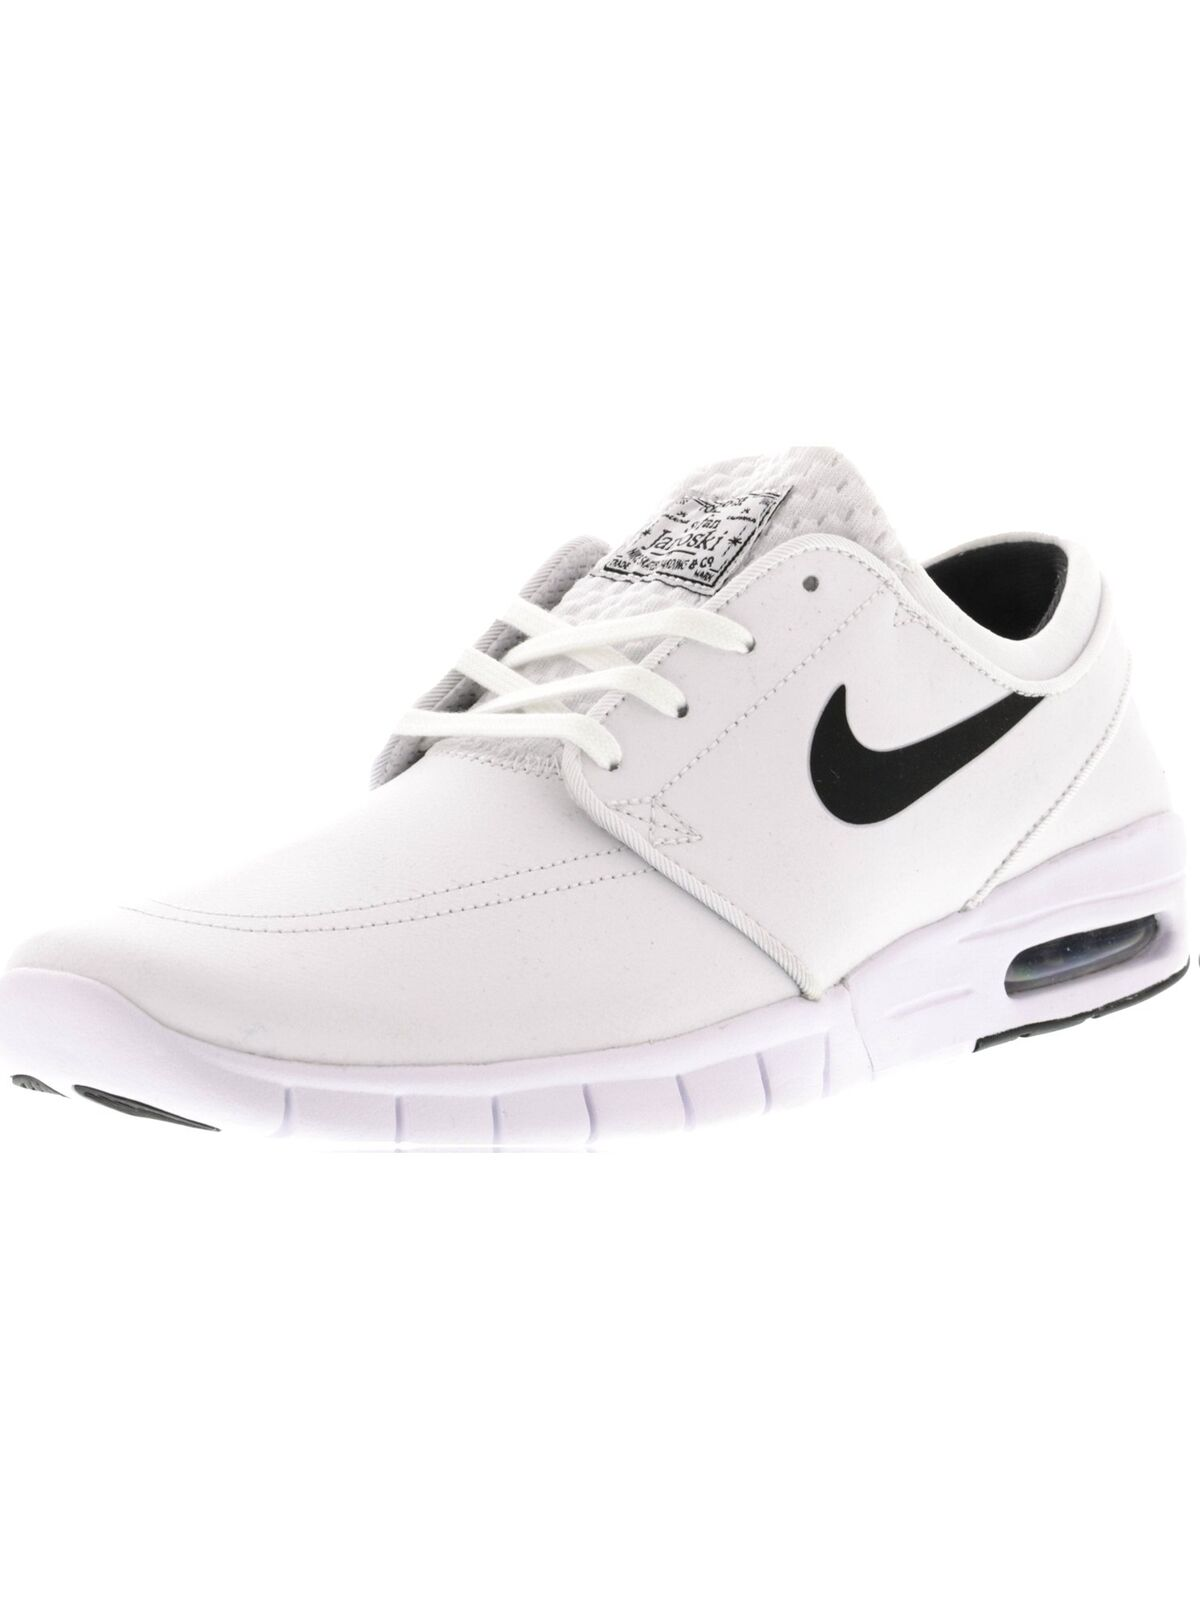 Nike hombre Stefan Janoski Fashion max L tobillo High Fashion Janoski zapatillas 4f214c